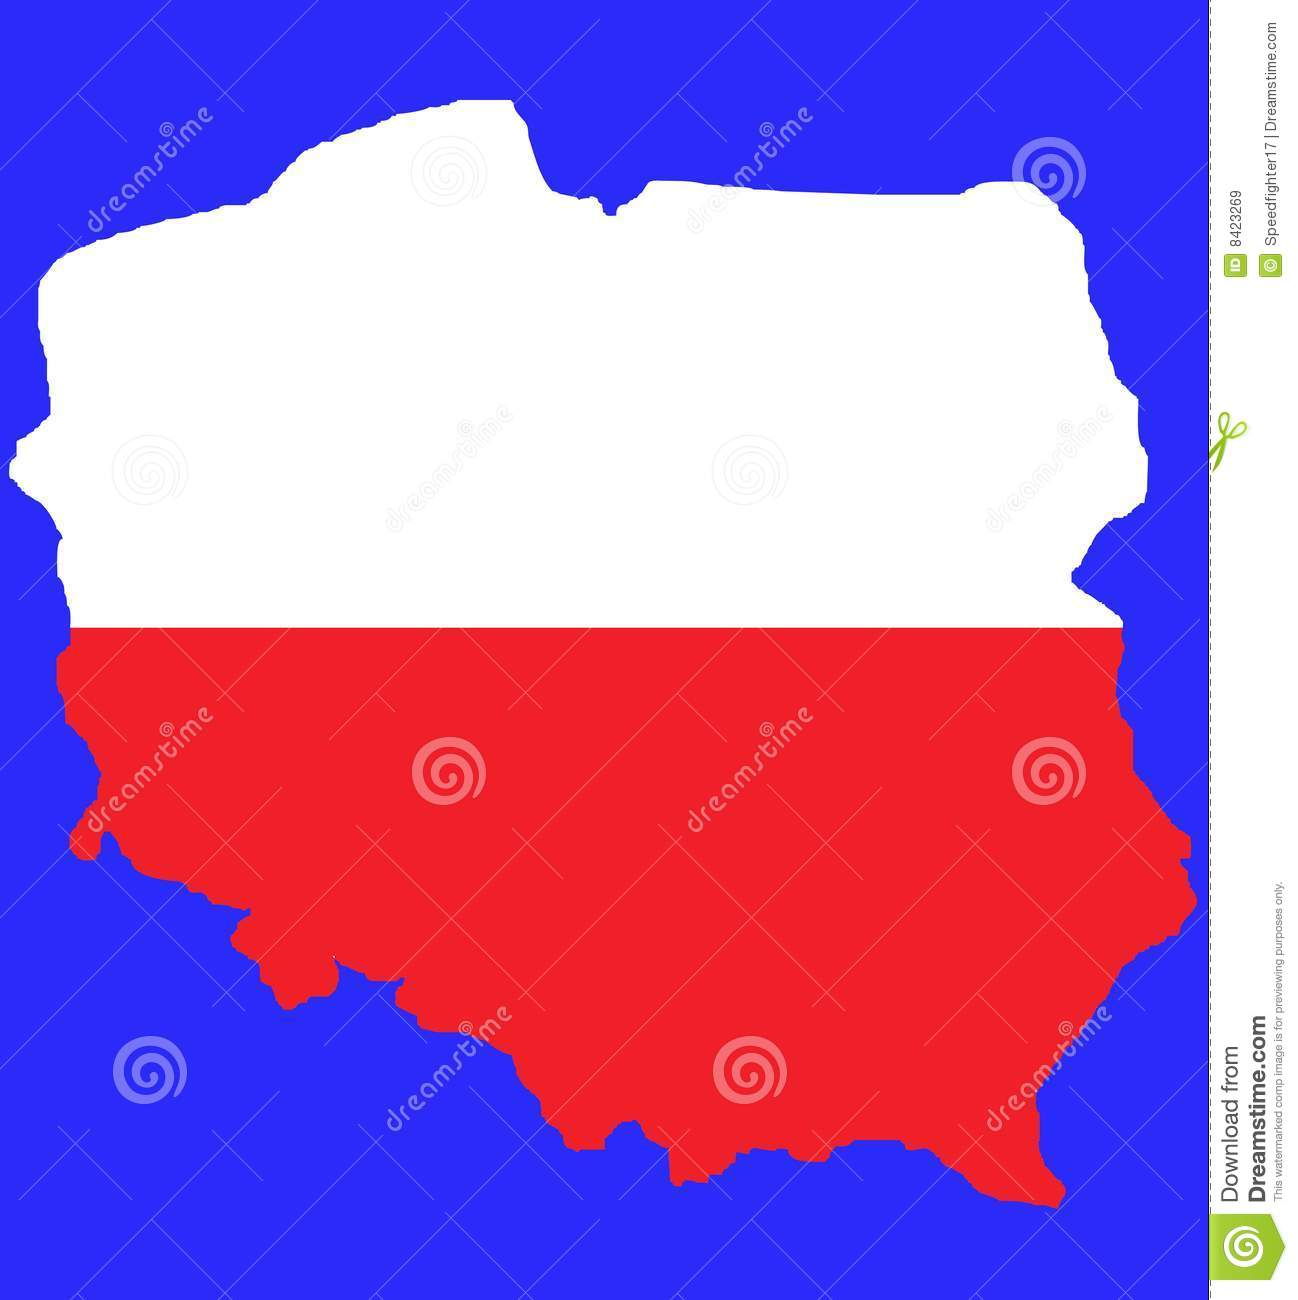 red outline map of poland flag royalty free stock images image